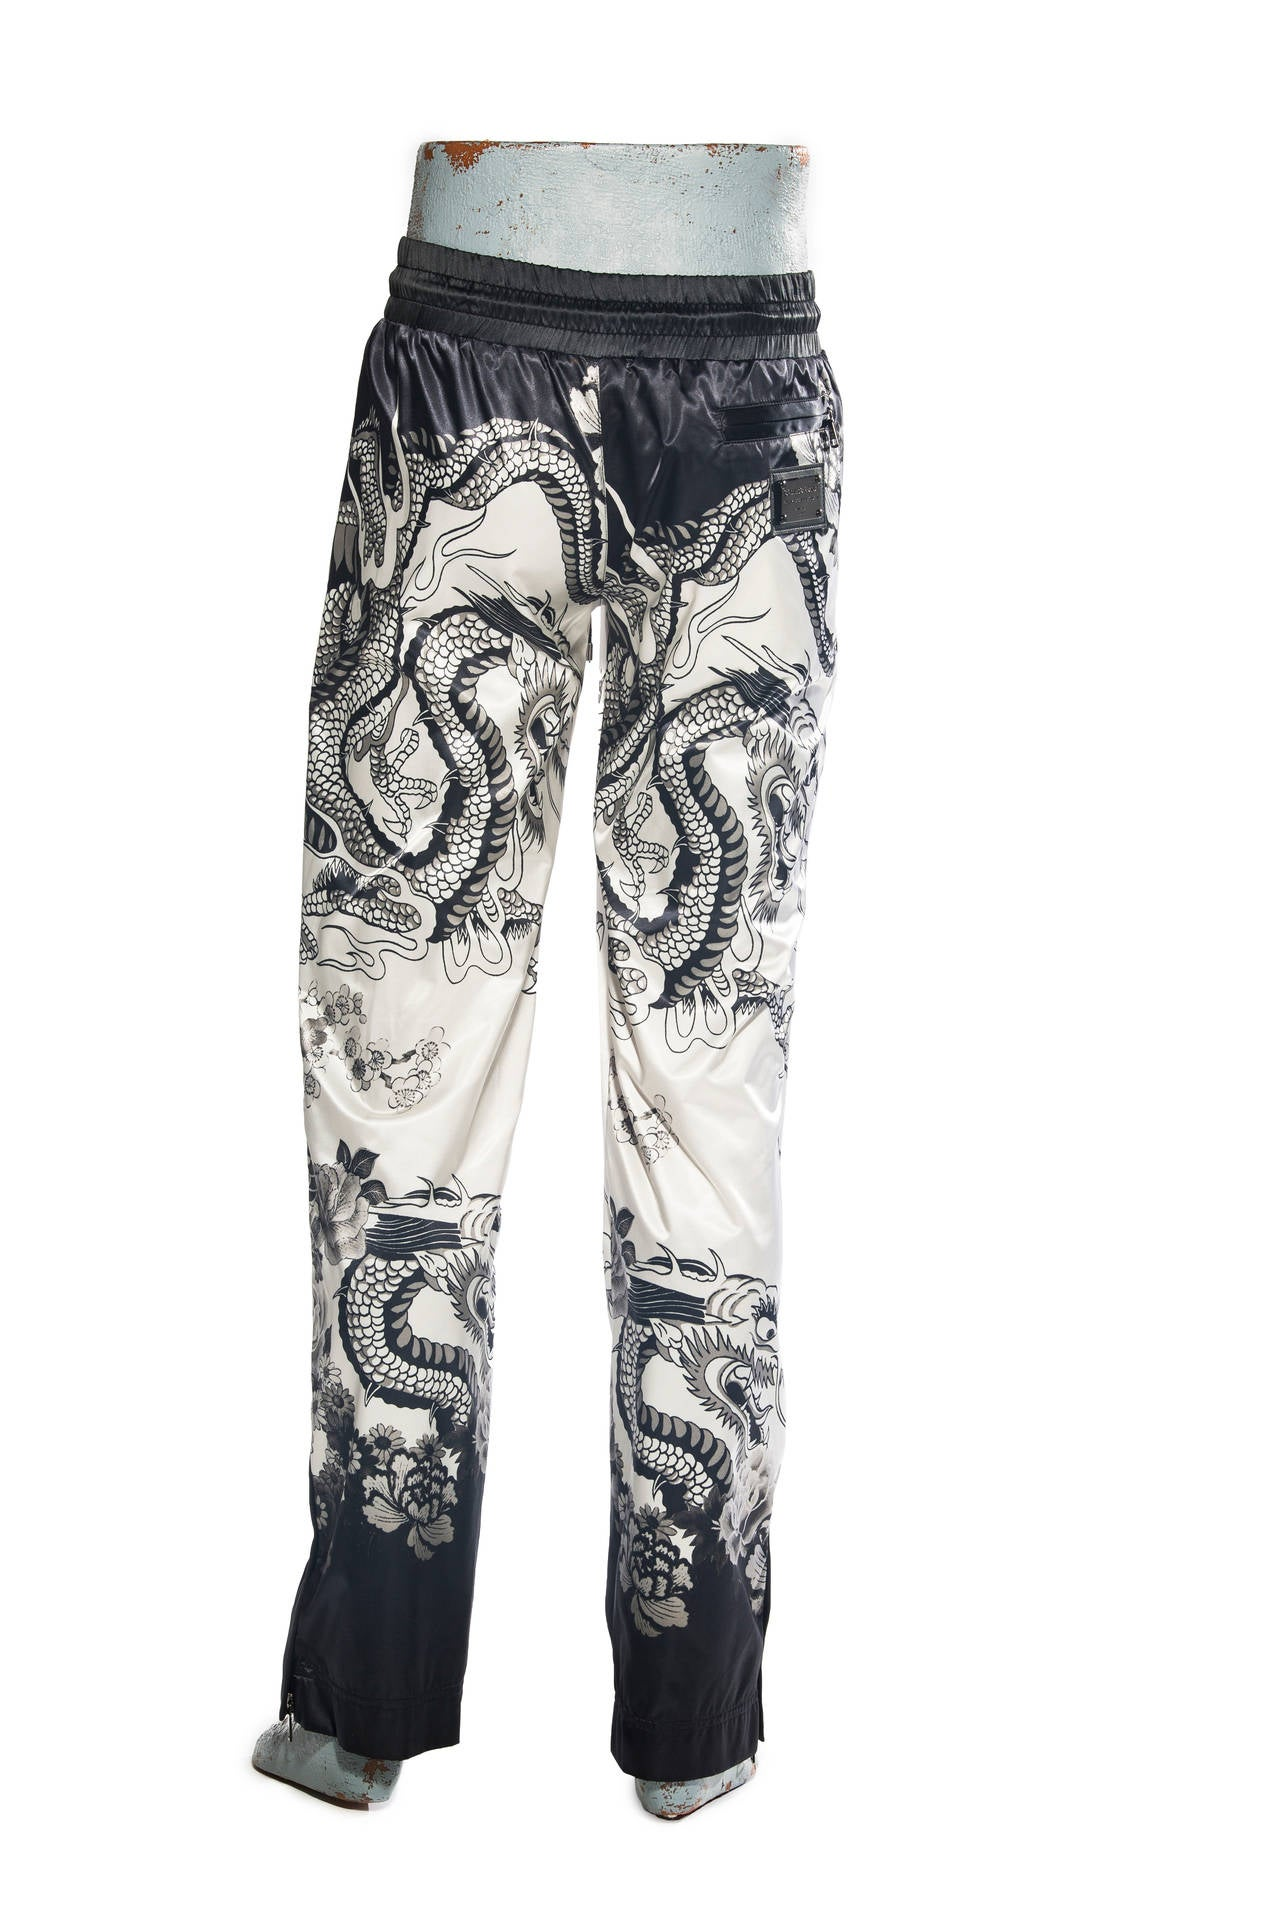 Gray Dolce & Gabbana Men's White Black Satin Dragon Print Pants, Spring - Summer 2009 For Sale